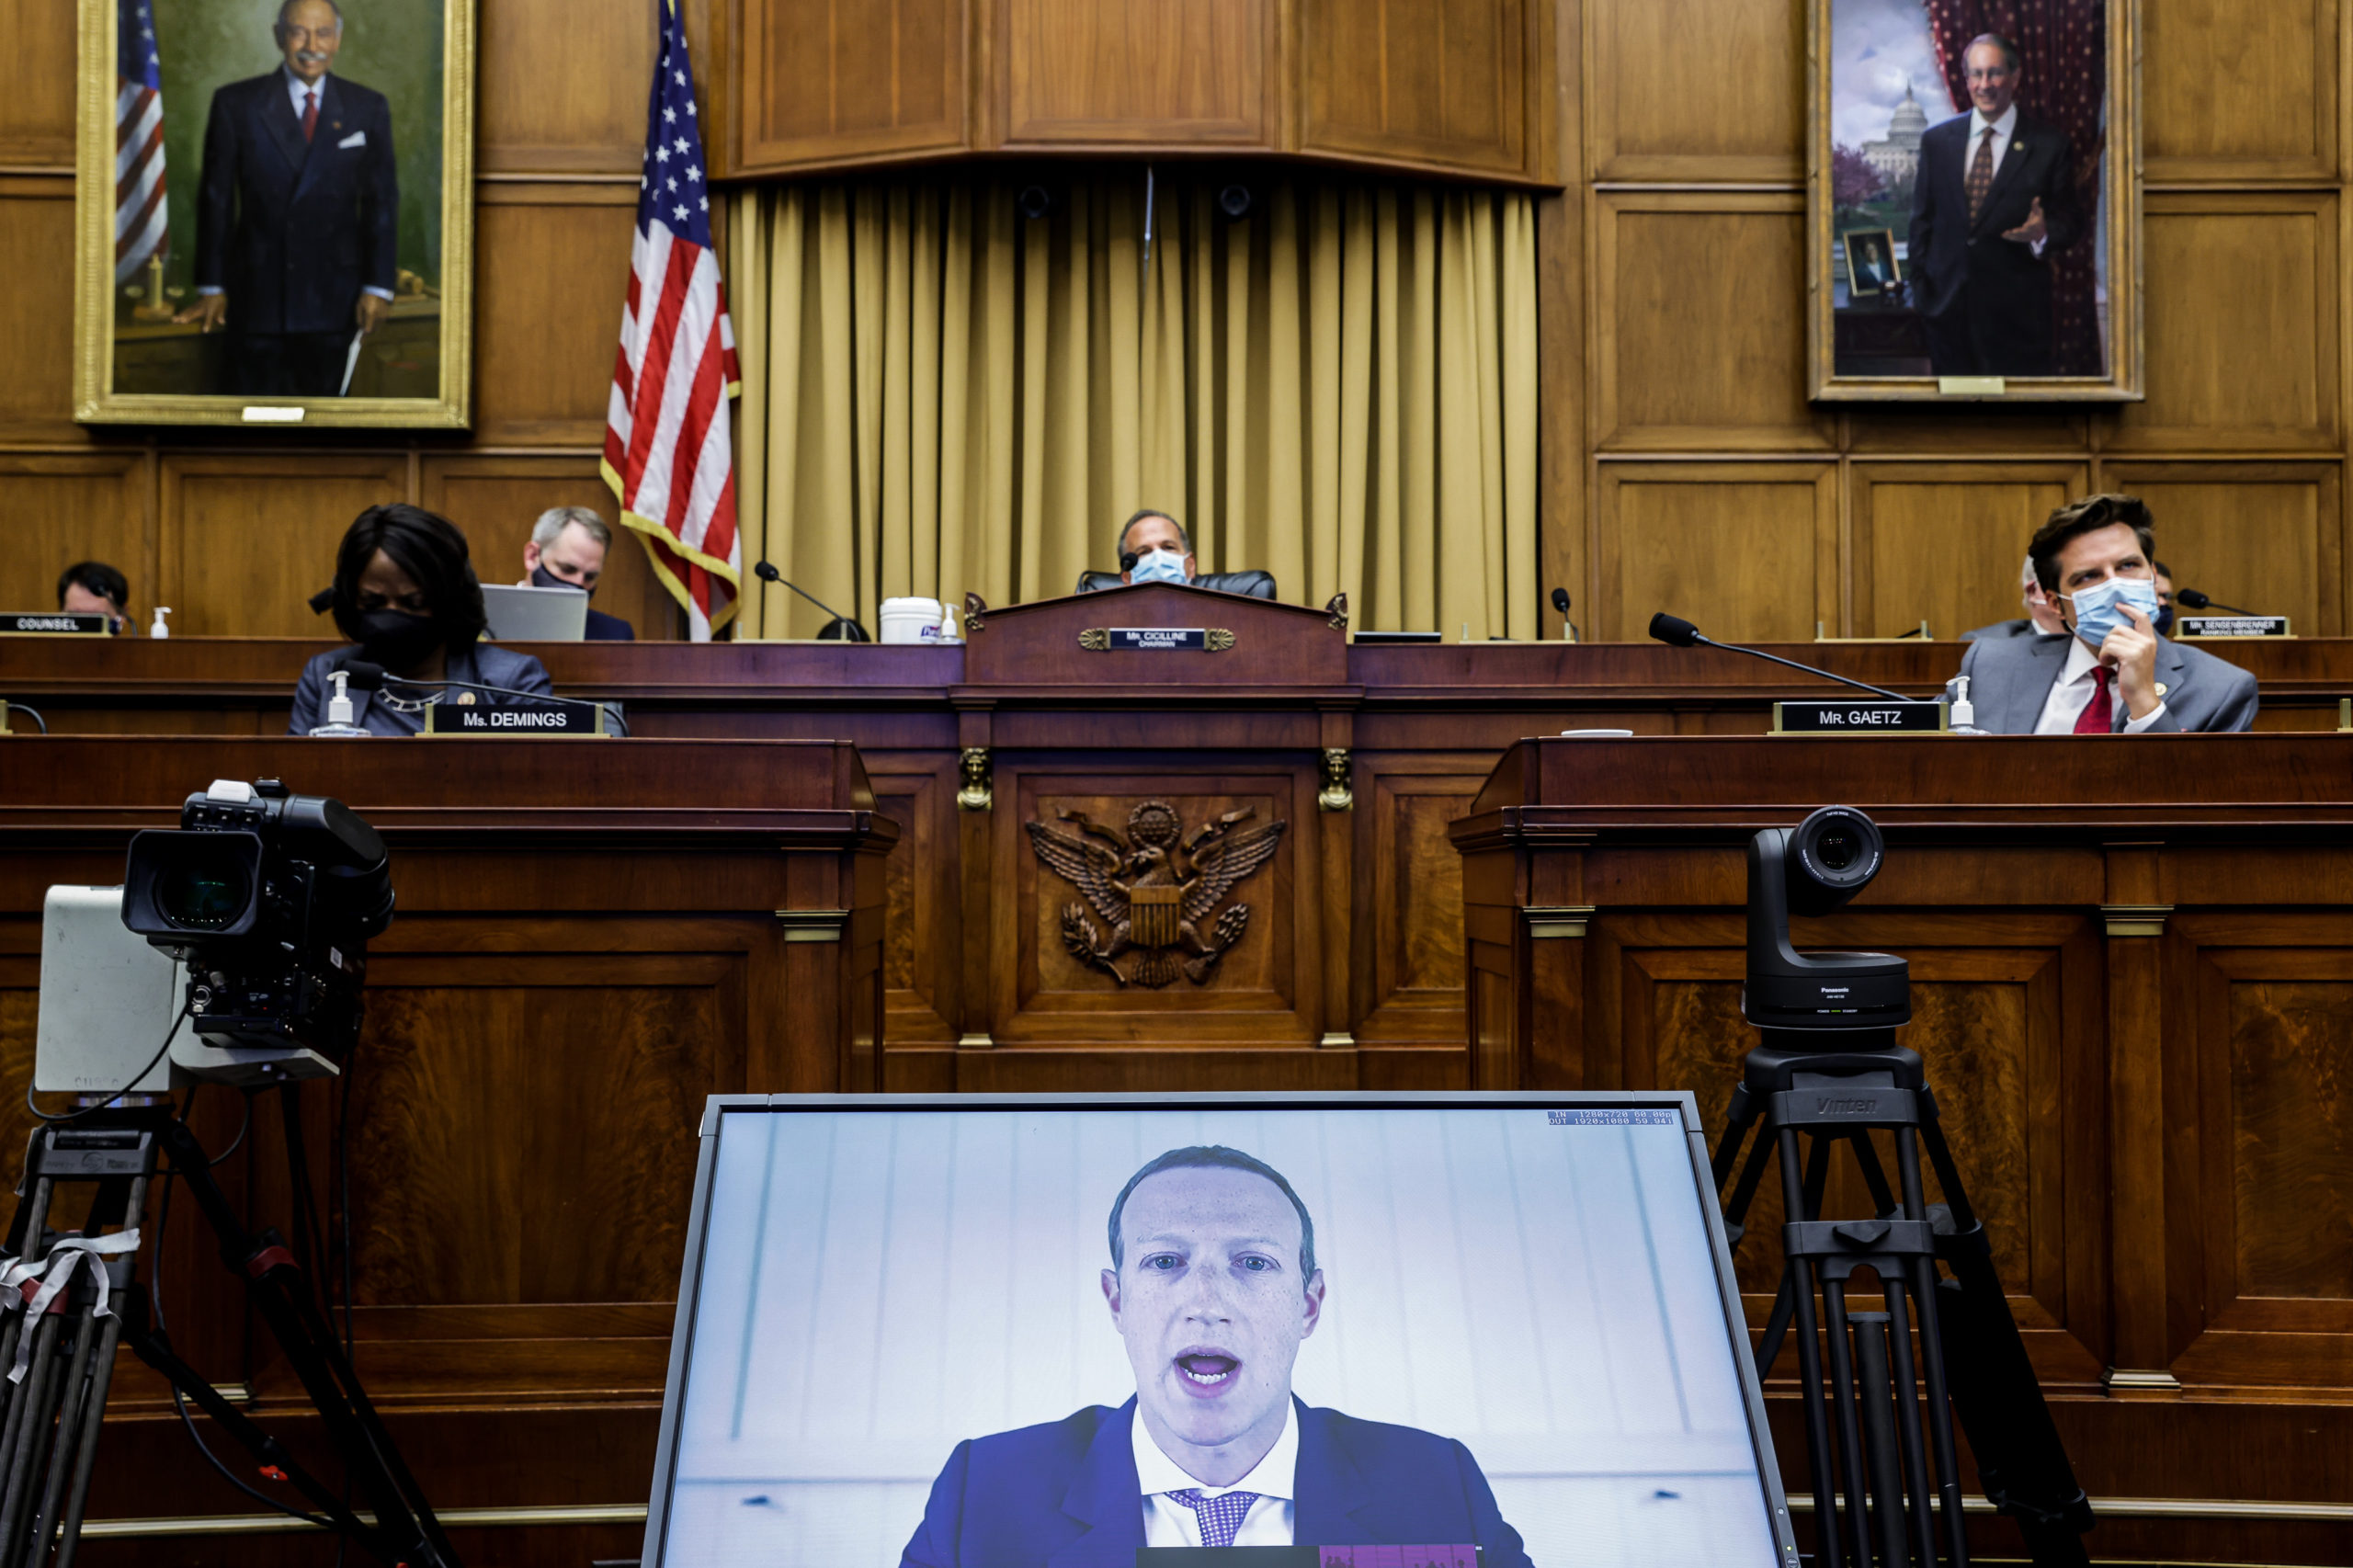 Facebook CEO Mark Zuckerberg speaks via video conference during a House Judiciary hearing on July 29. (Graeme Jennings-Pool/Getty Images)